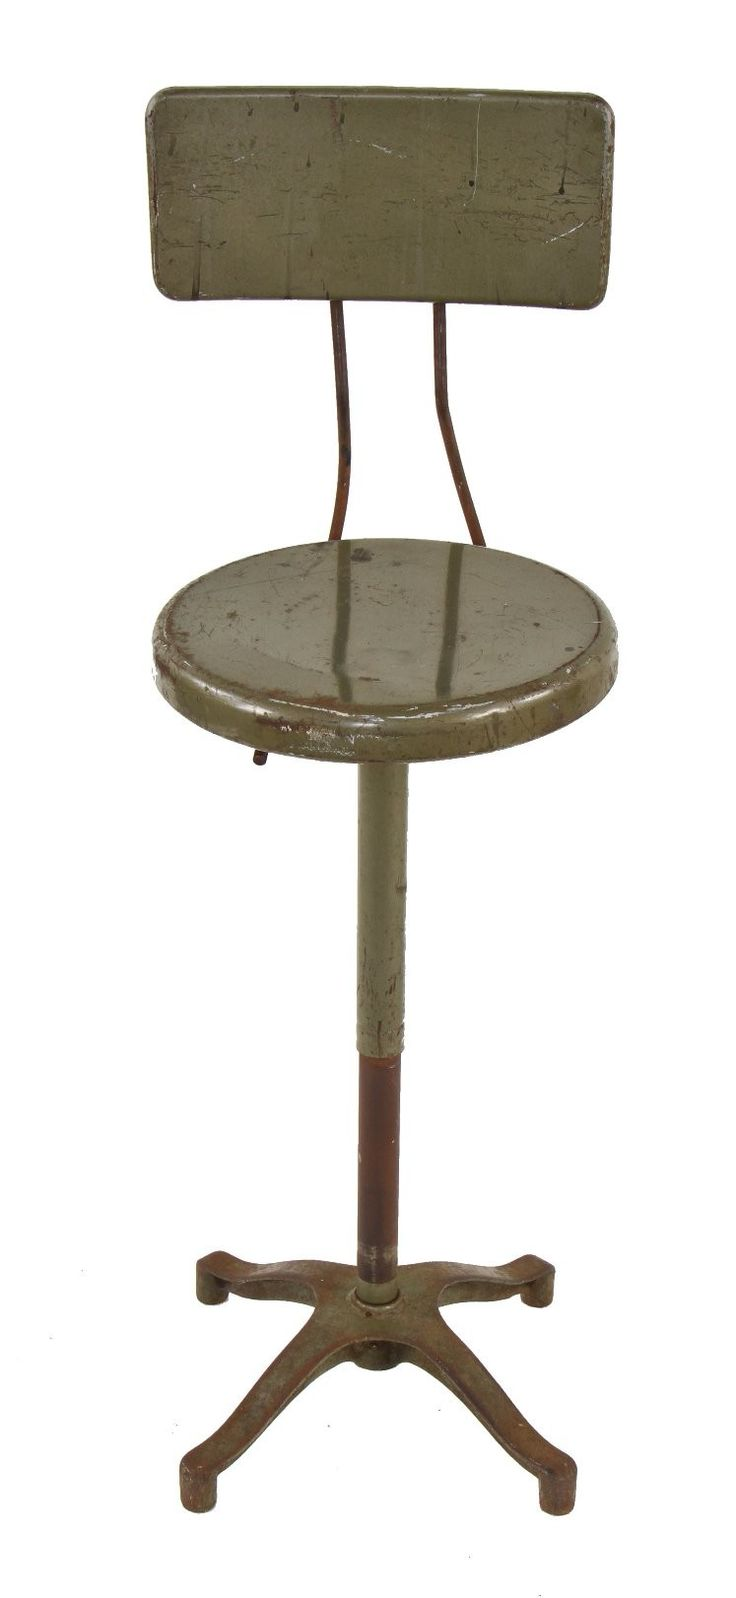 practical early american vintage industrial  adjustrite  army green enameled telescoping factory workbench stool with  sc 1 st  Pinterest : industrial work stool - islam-shia.org